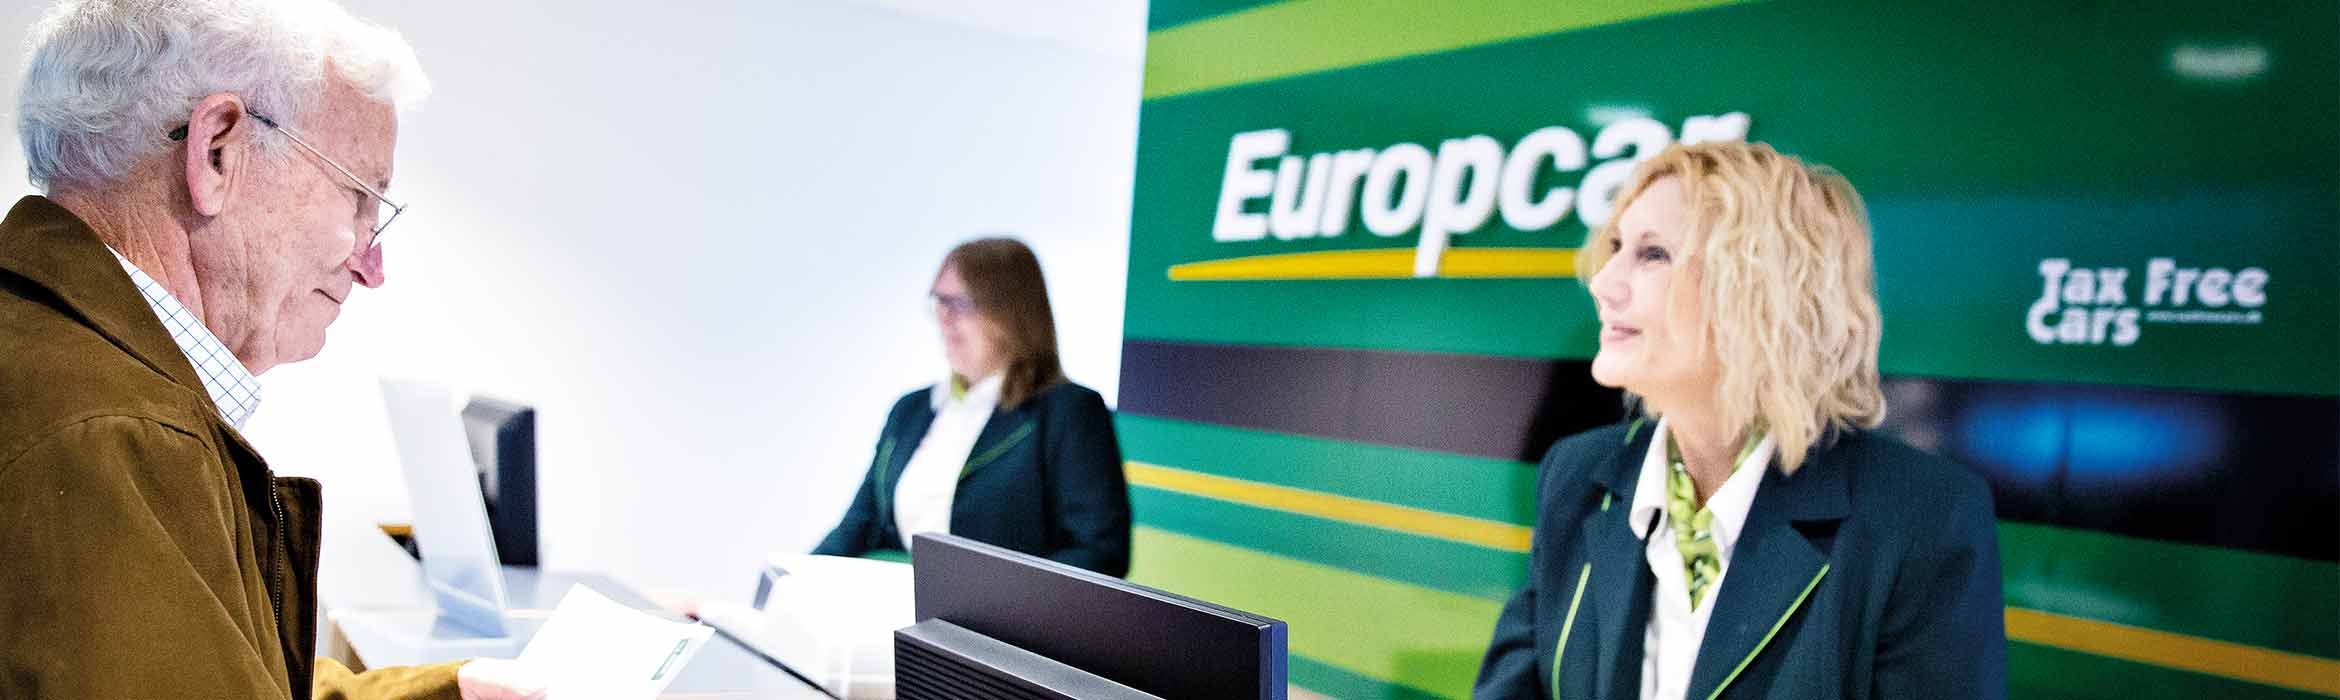 Europcar employee using Brother printer to help customer